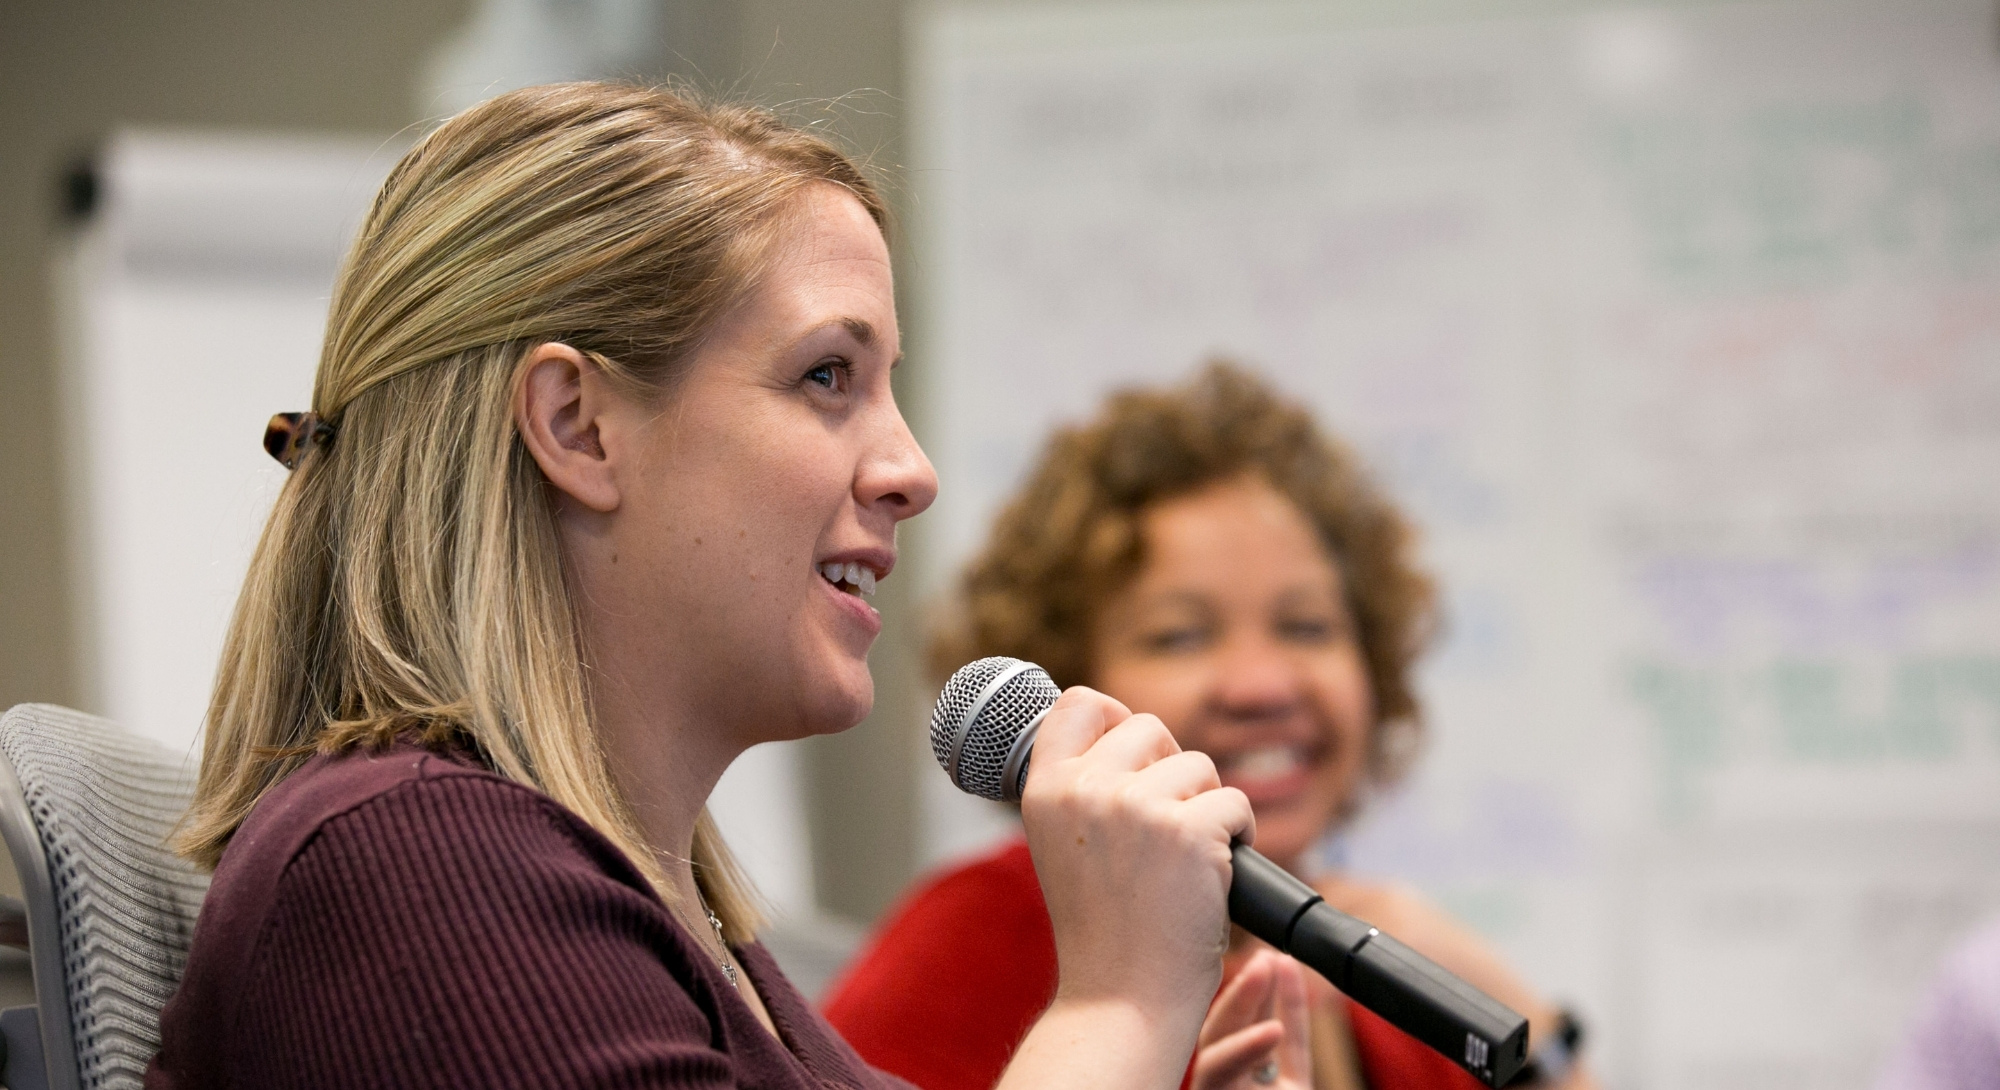 A woman with blonde hair, medium-light toned skin, and a brown cardigan speaks into a microphone in a conference room.